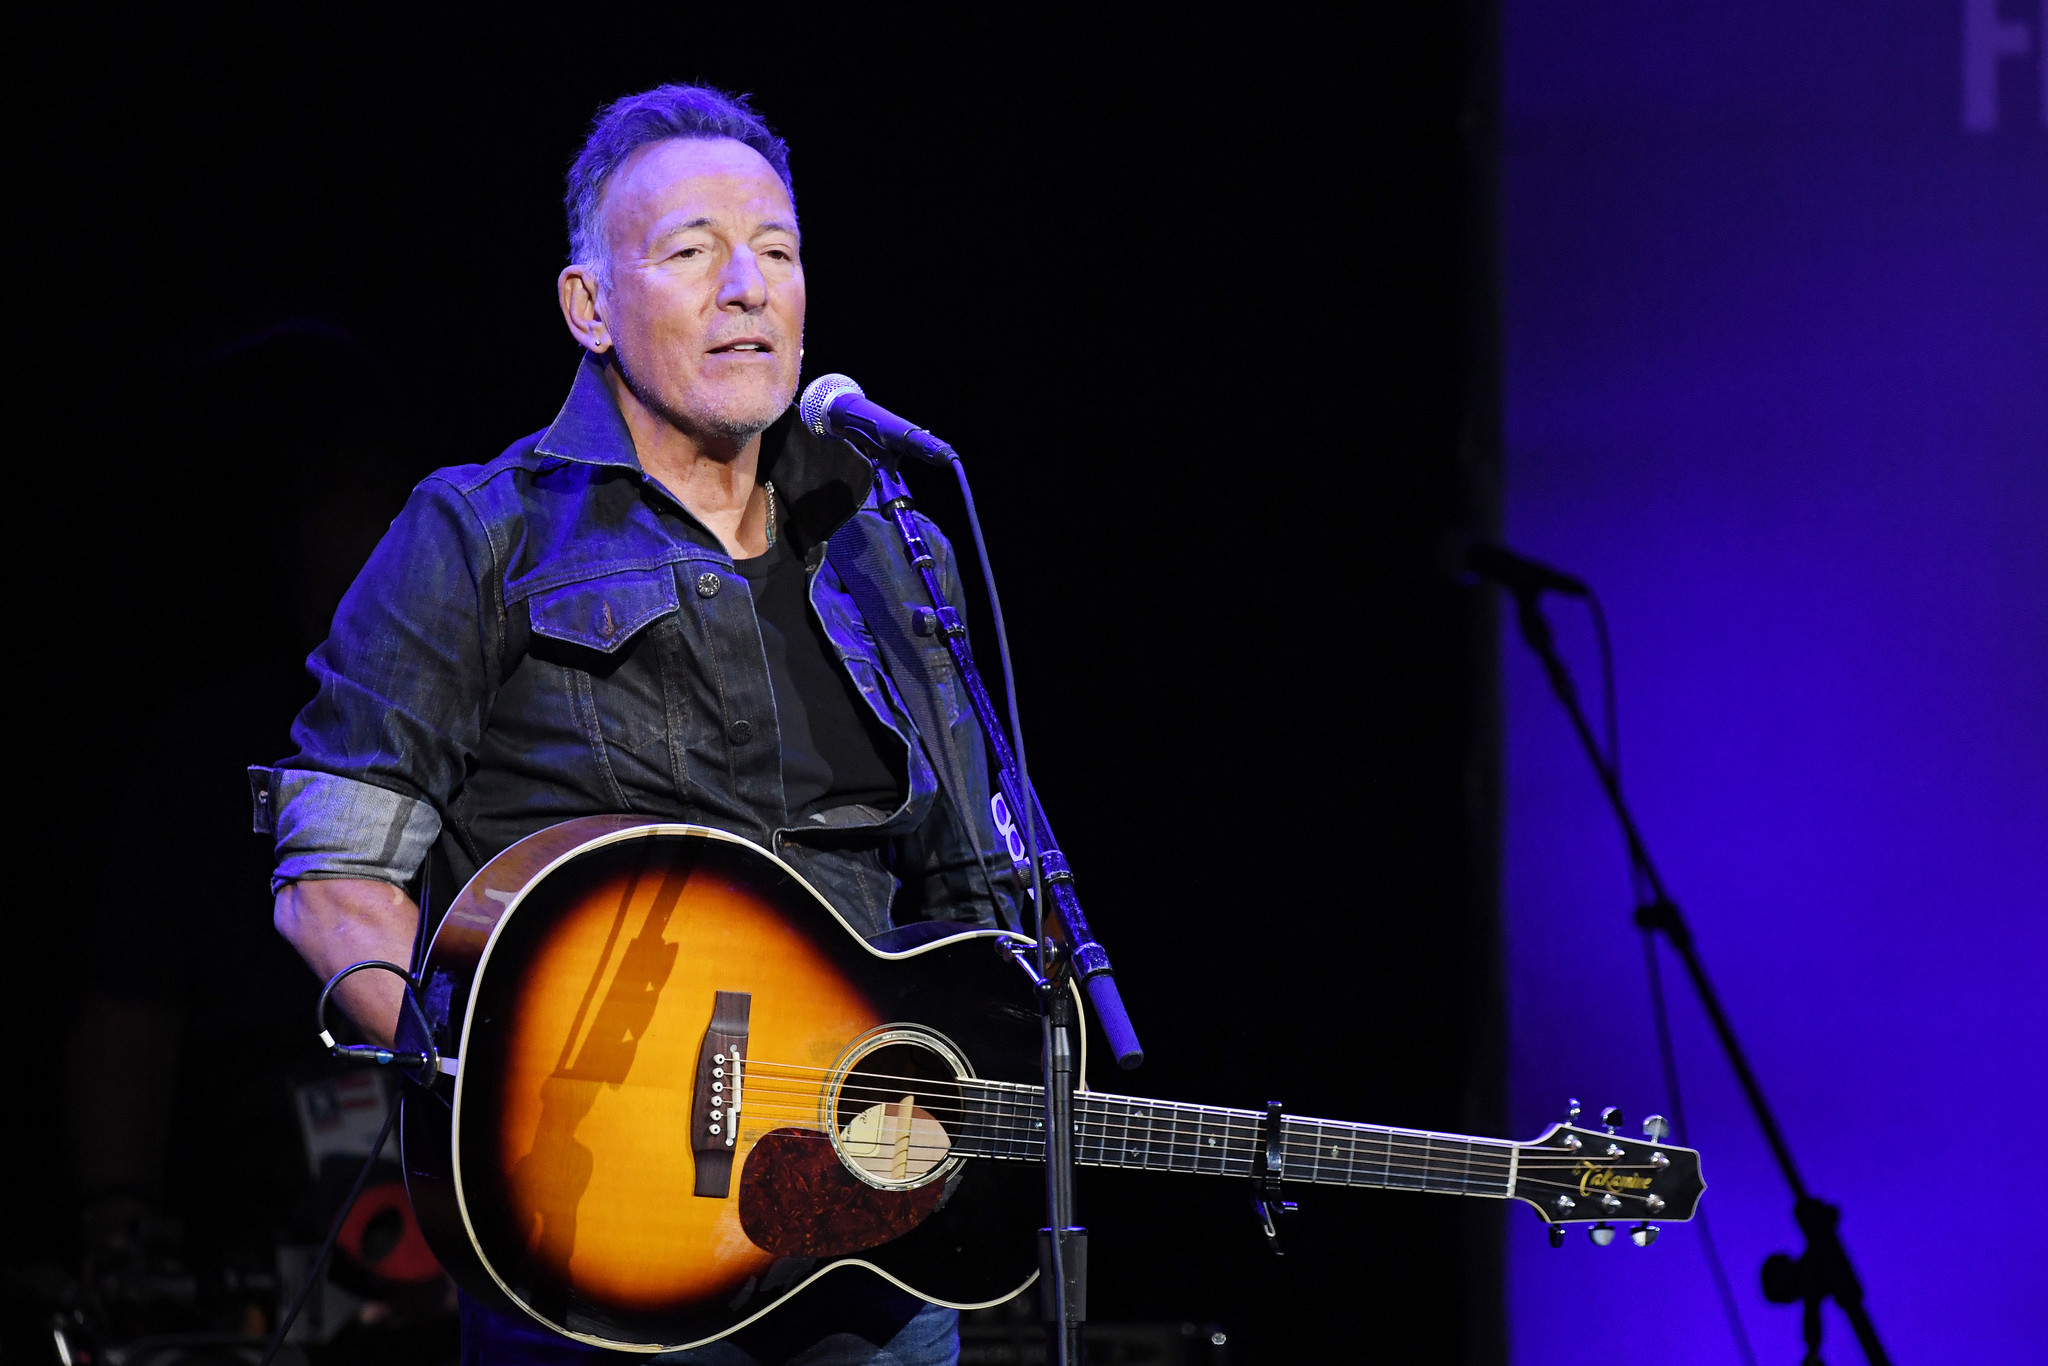 Bruce Springsteen announces star-studded event to raise money for coronavirus relief in New Jersey